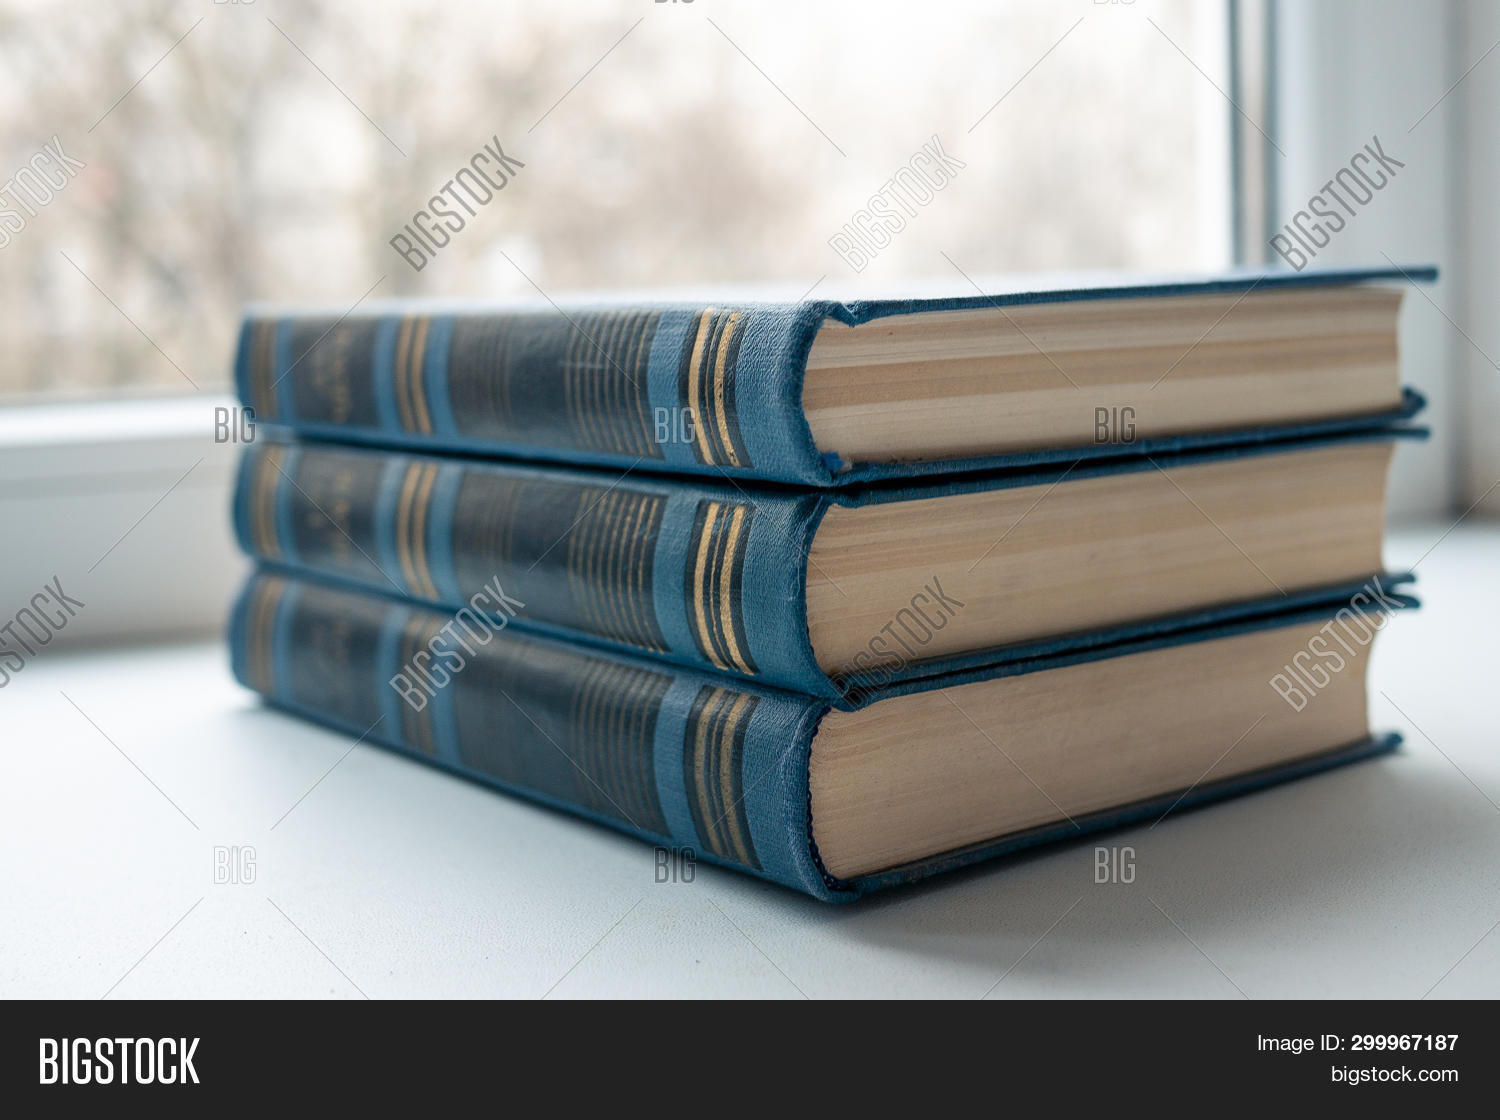 Tree Blue Beautiful Closed Books On White Isolated Background. Beautiful Blue Books Cover. A Row Of